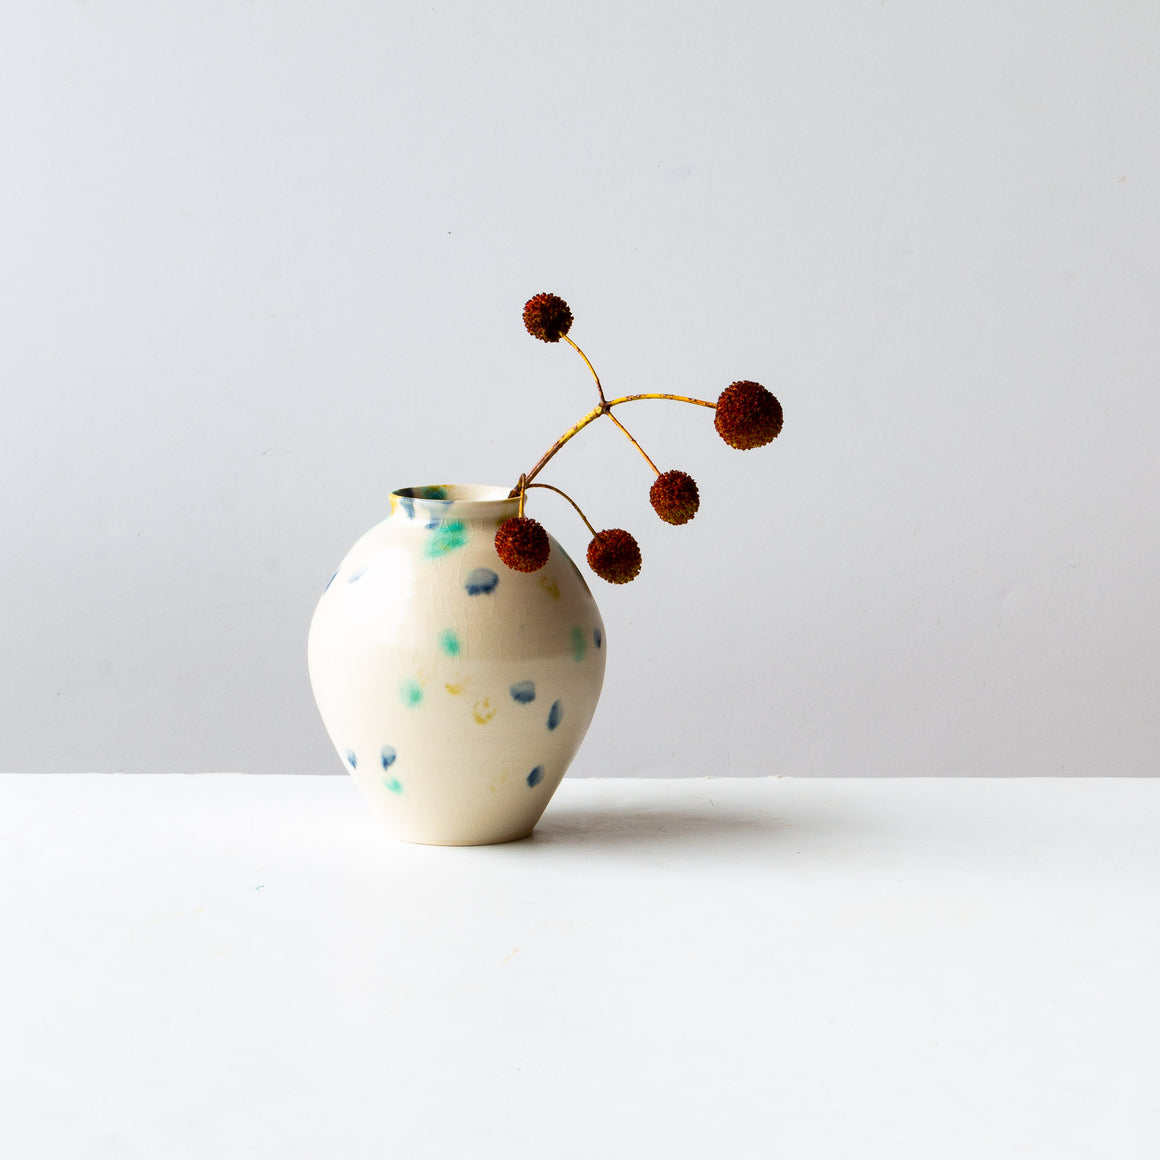 Hanabira - Handmade Small Ceramic Vase Shown on Black Background - Sold by Chic & Basta